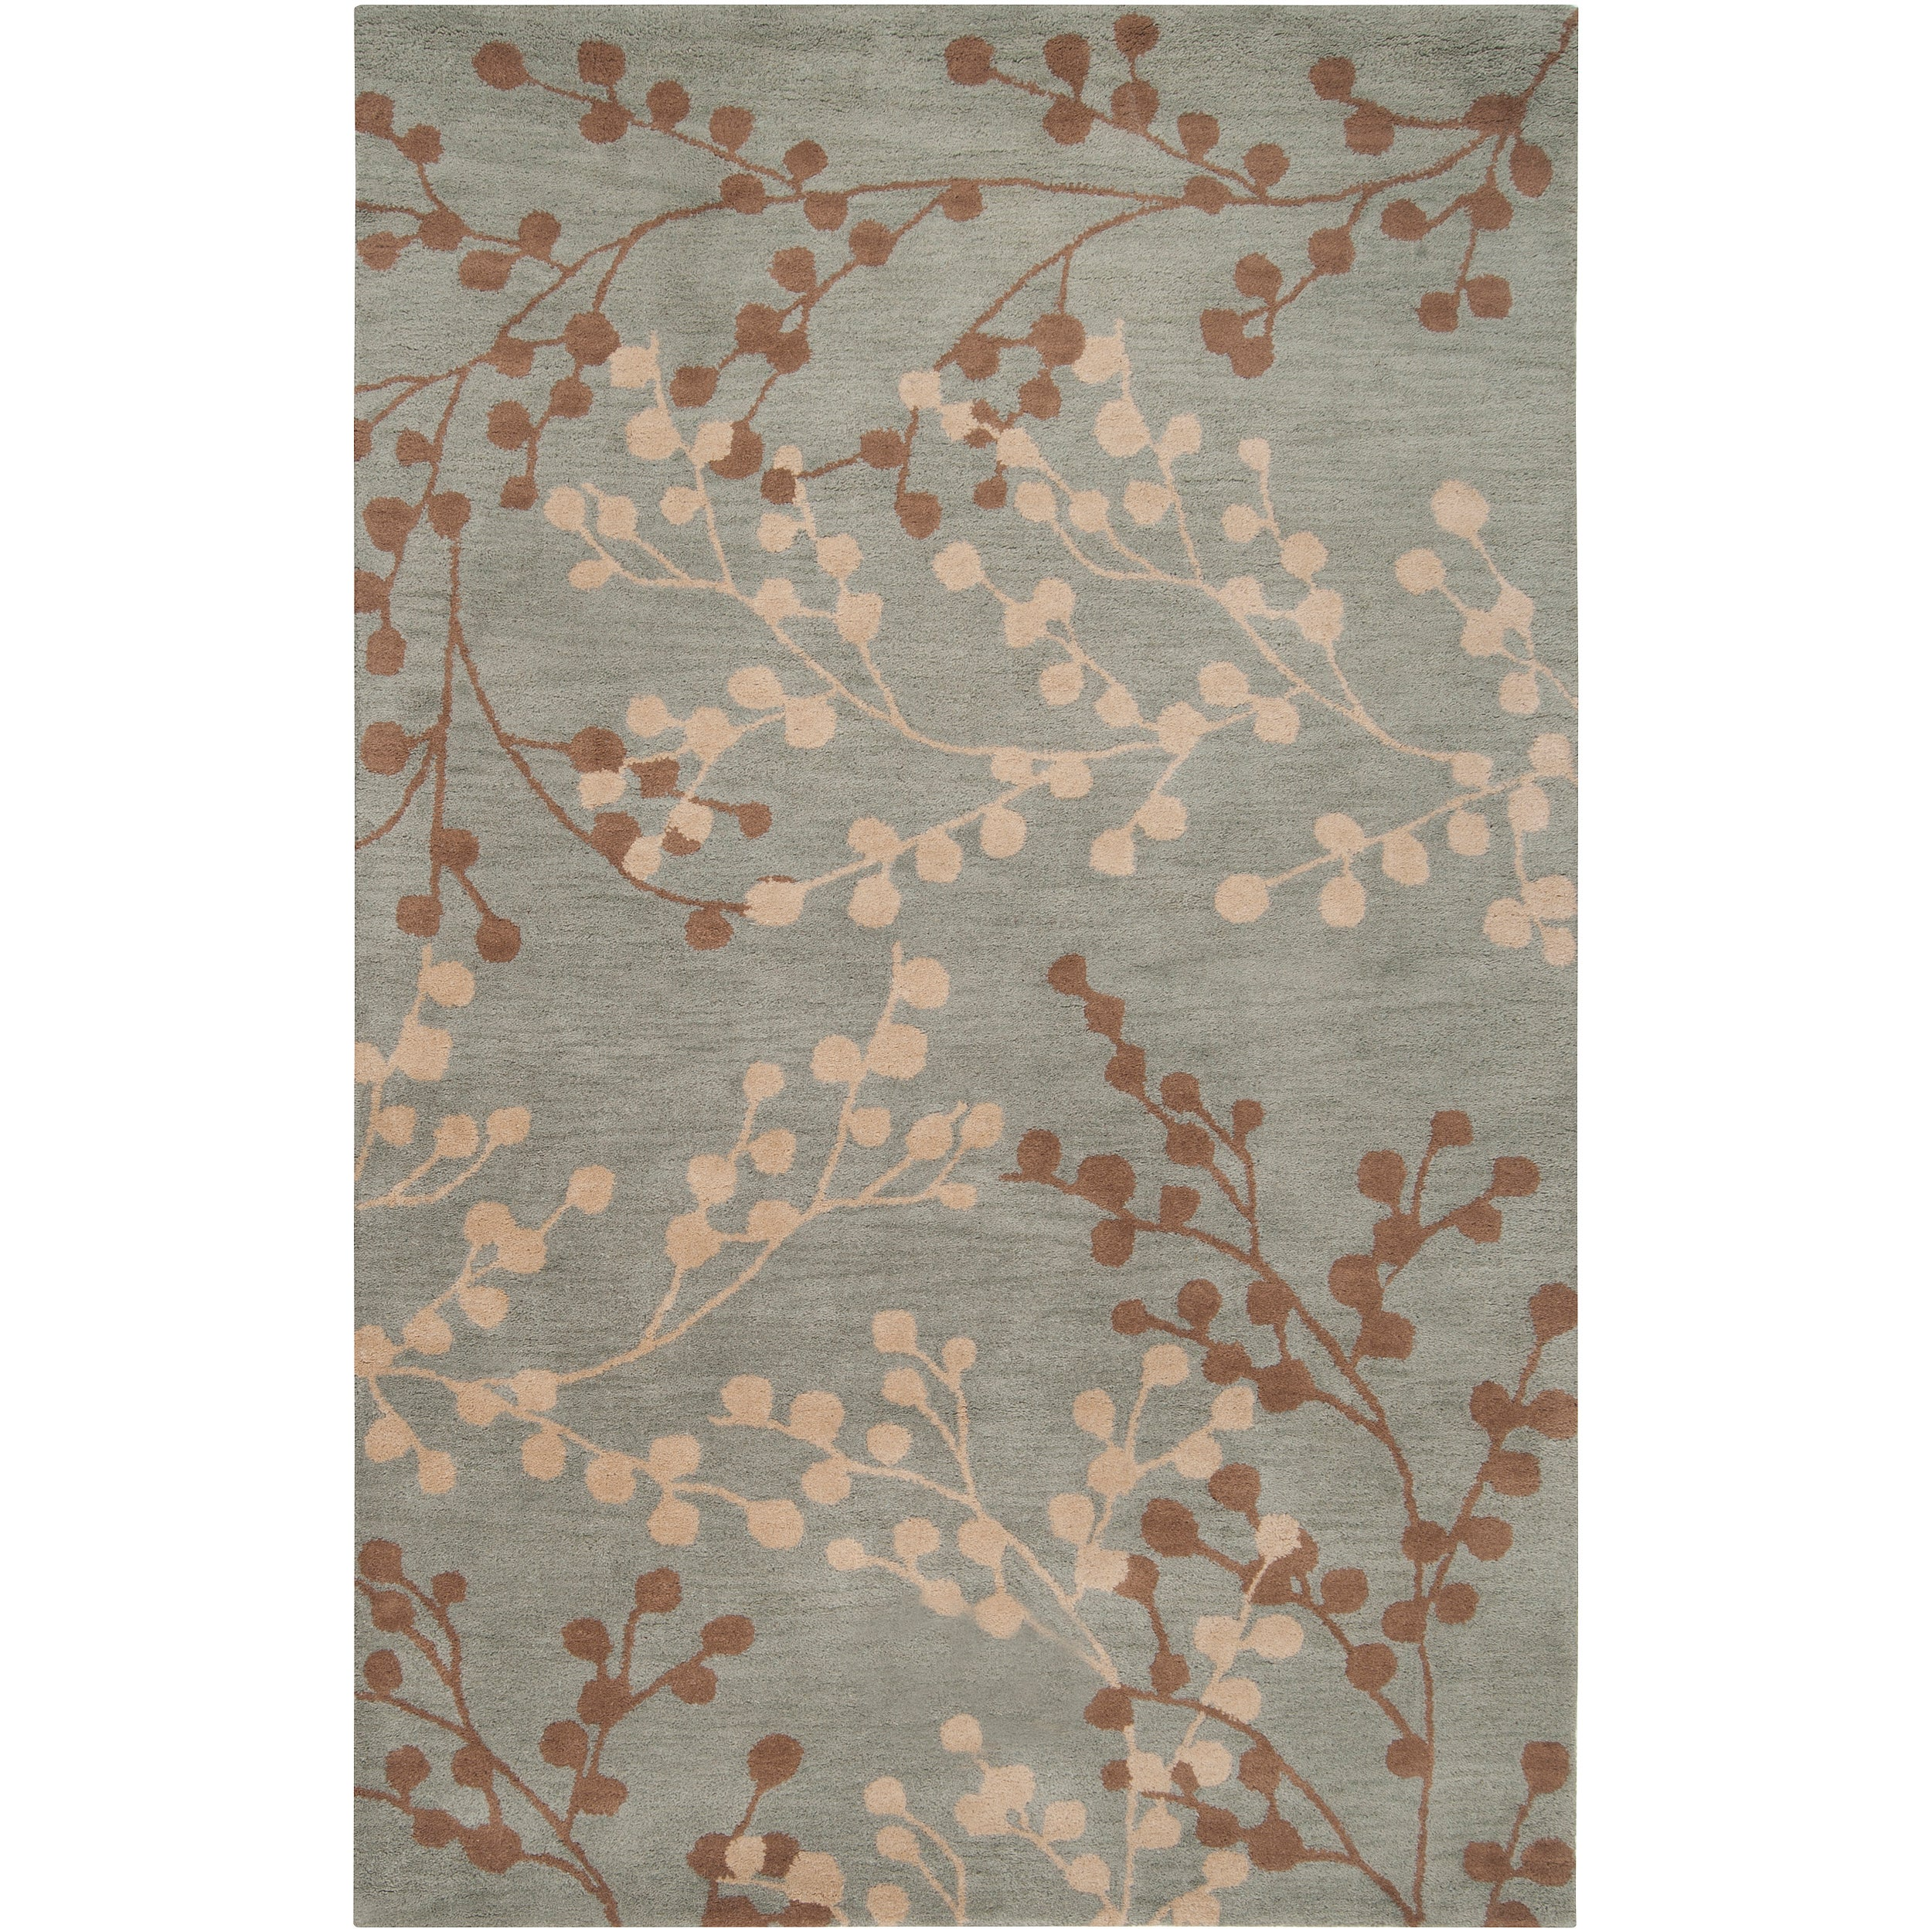 Shop Hand Tufted Blossom Blue Floral Wool Area Rug 8 X